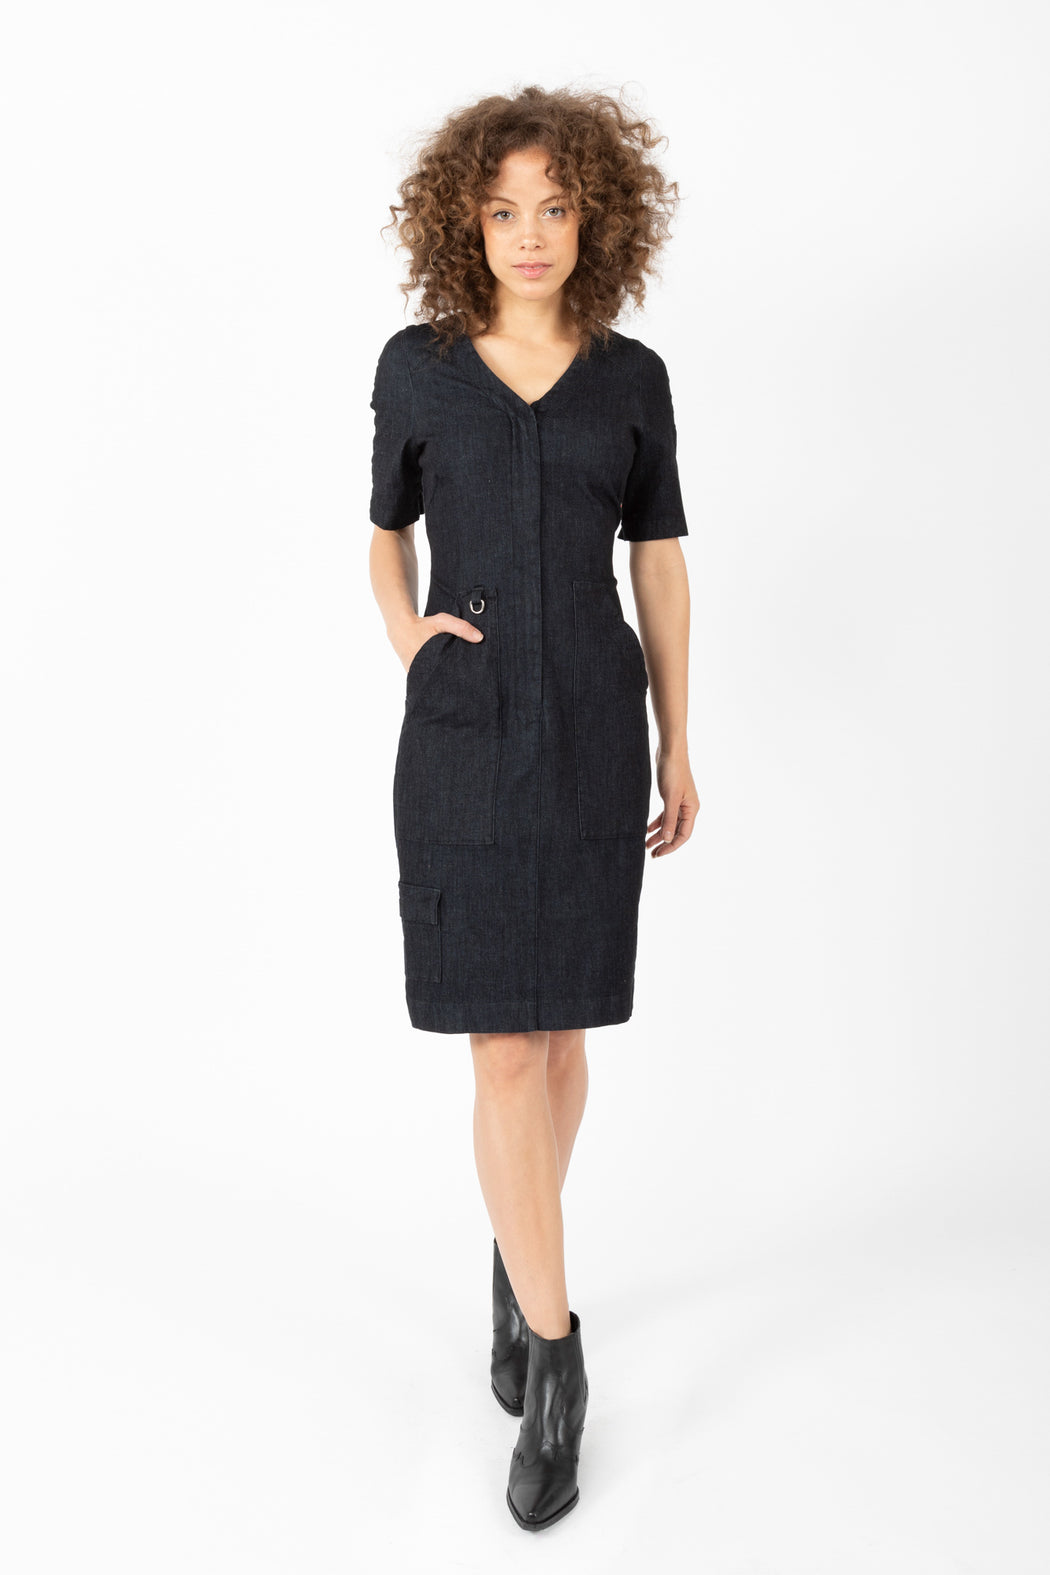 Our Faculty Dress is a high stretch denim dress with strategically placed pockets, a hardware detail, and short sleeves offer seasonal versatility.